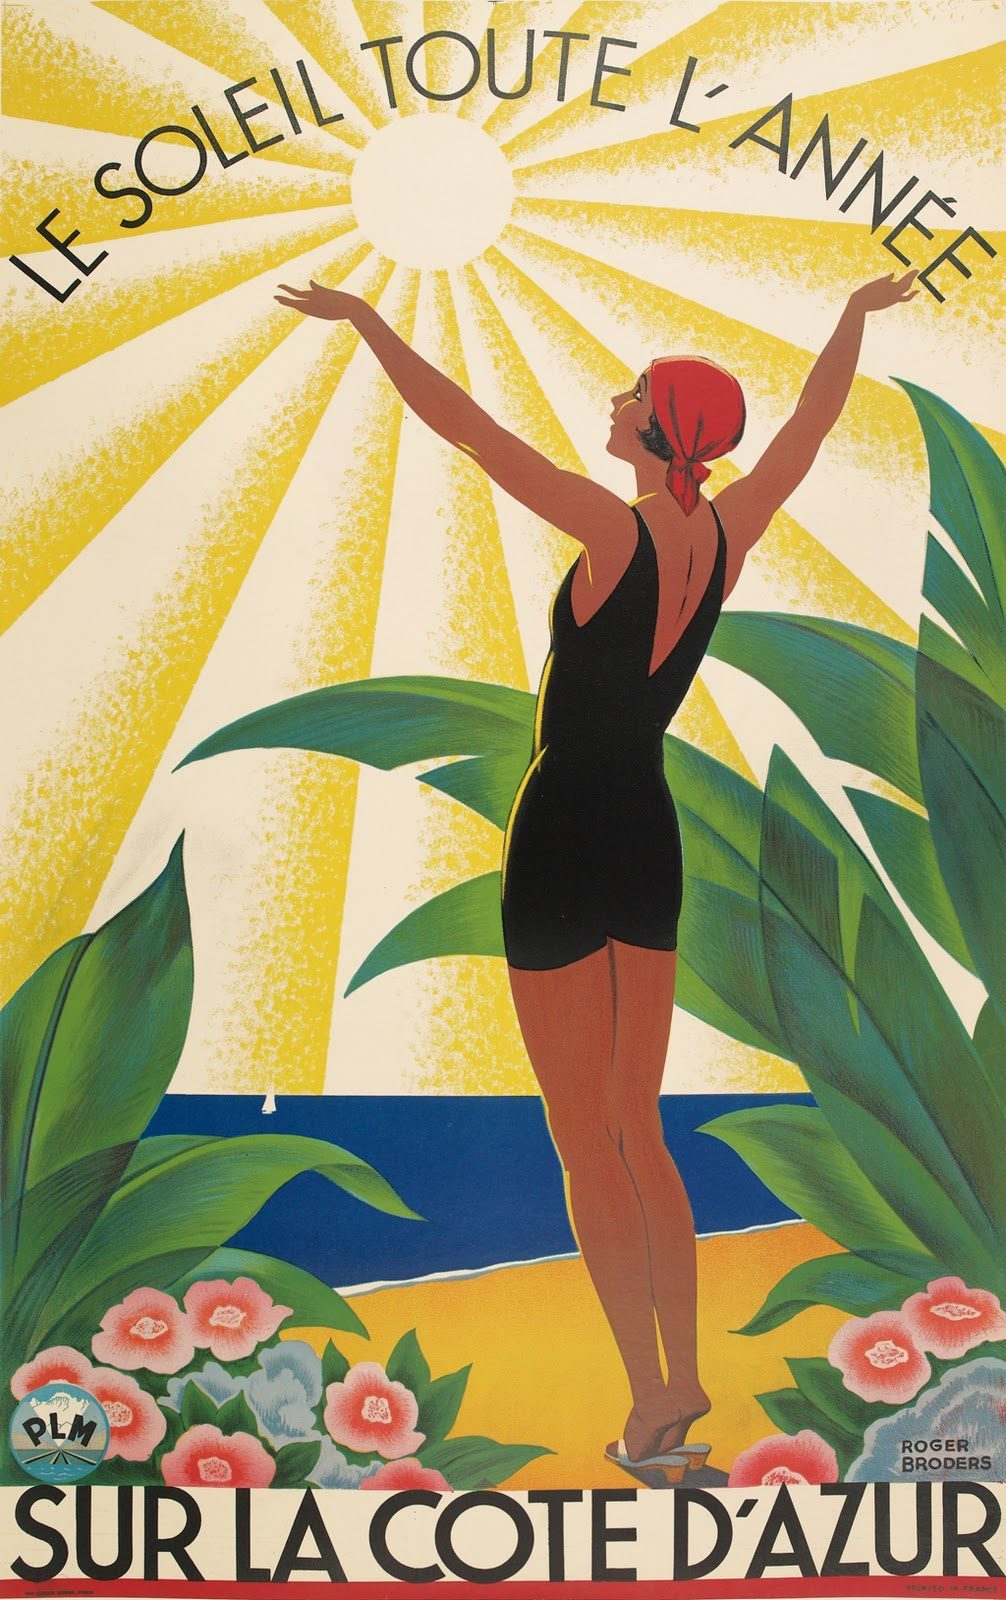 The-Sun-All-Year-On-the-Côte-d\'Azur-1931-Roger-Broders - Flashbak